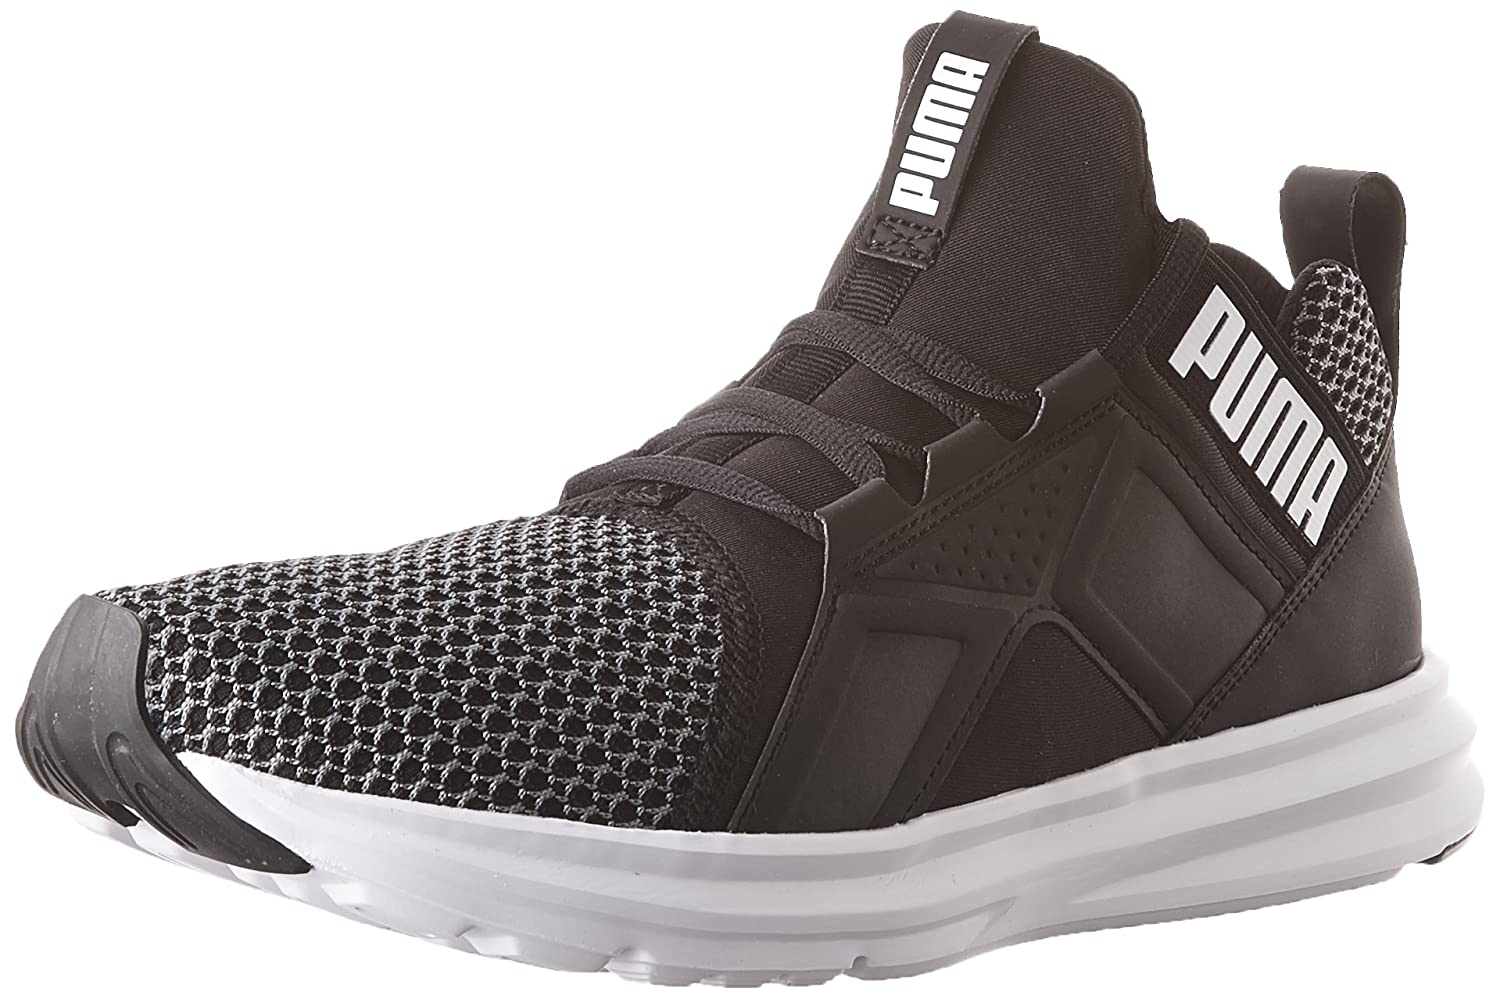 PUMA Men's Enzo Shift Running Shoes 18950601